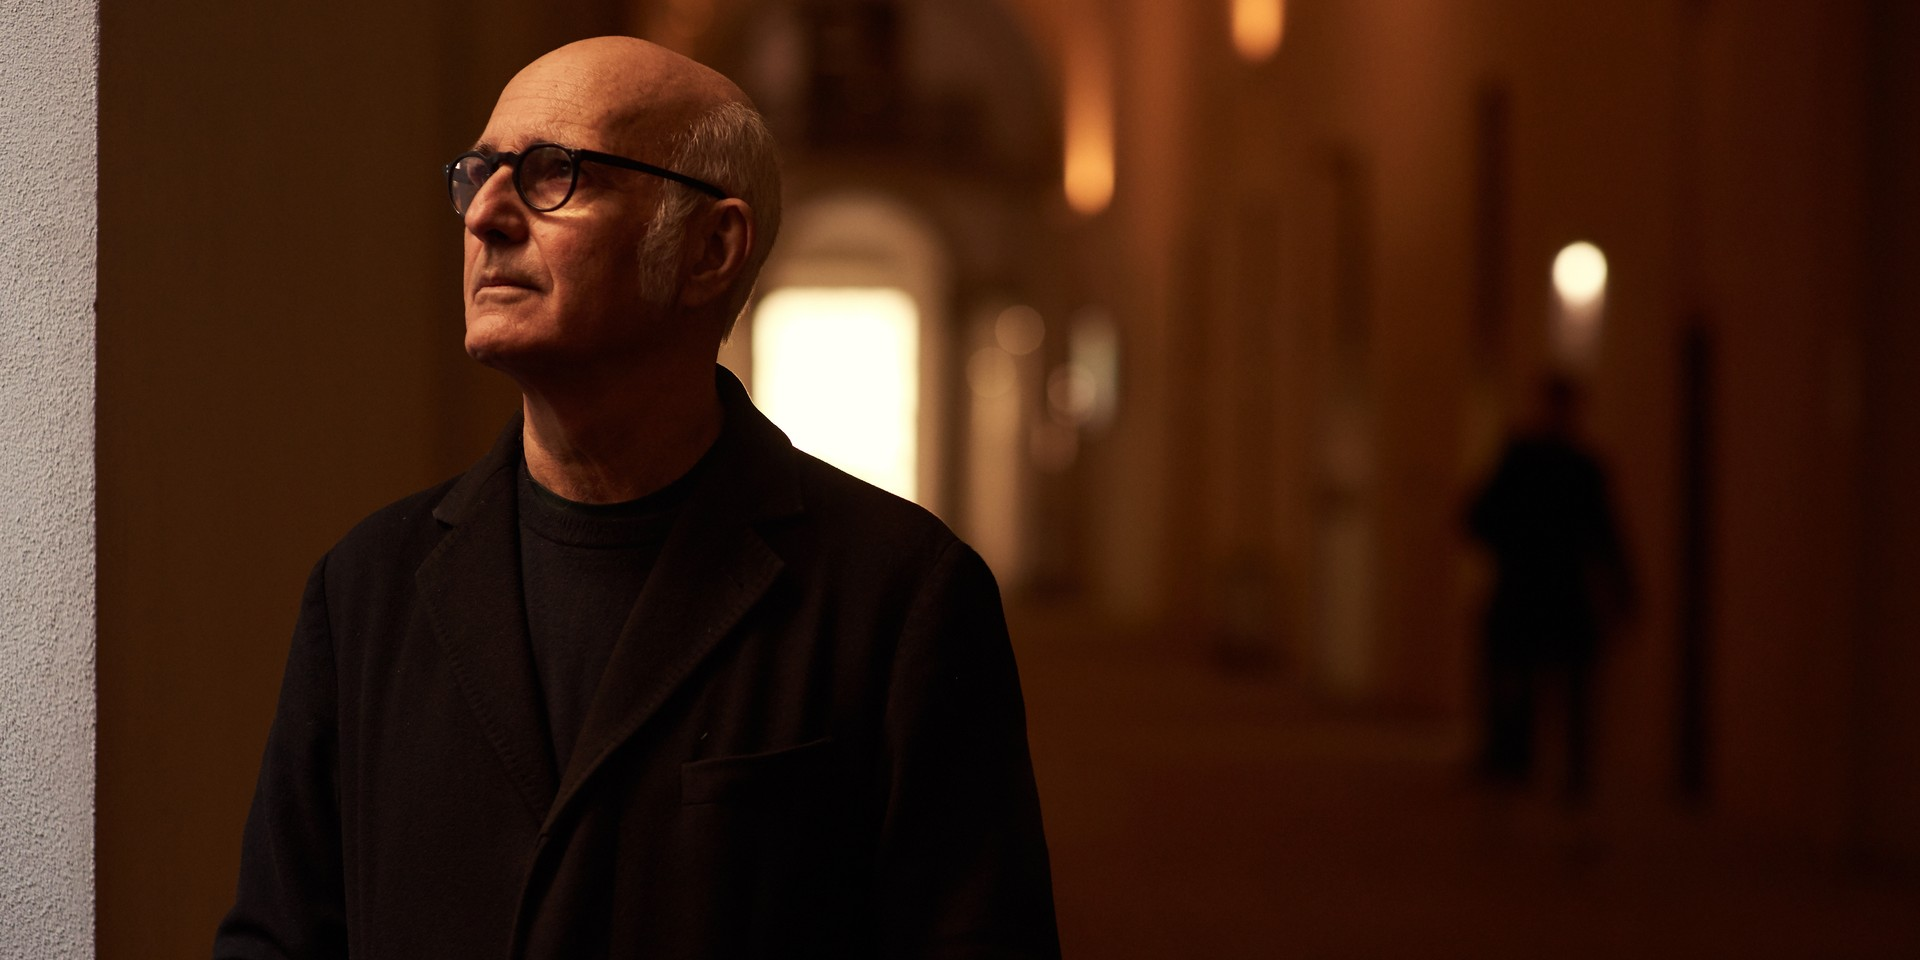 Ludovico Einaudi is coming to Singapore in January 2020